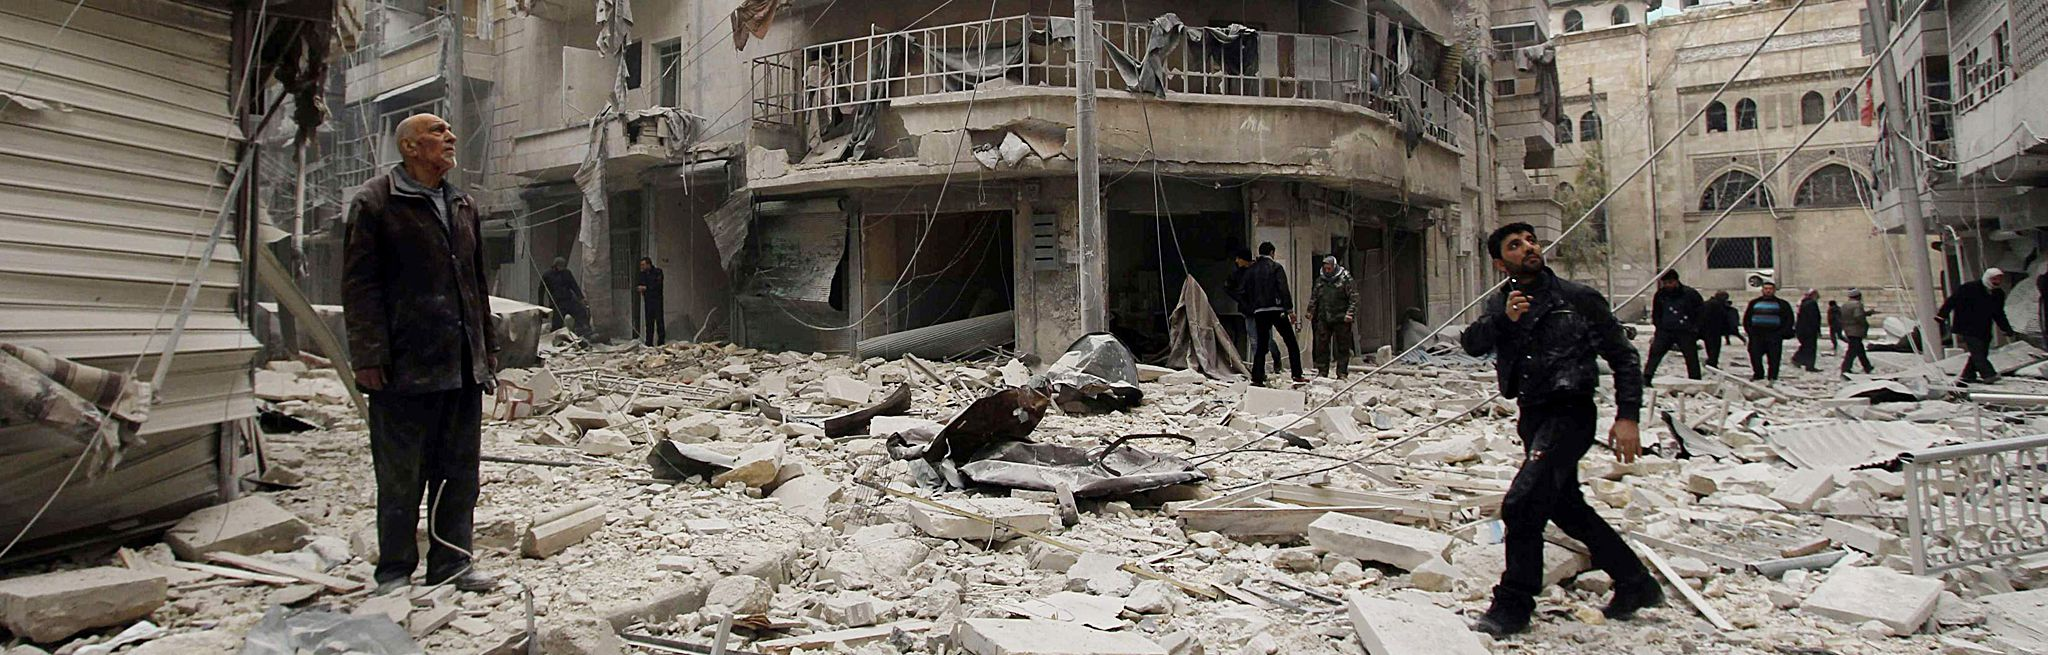 Consumed by Death and Destruction, Syria Is a Ruined Caricature of Its Former Glory